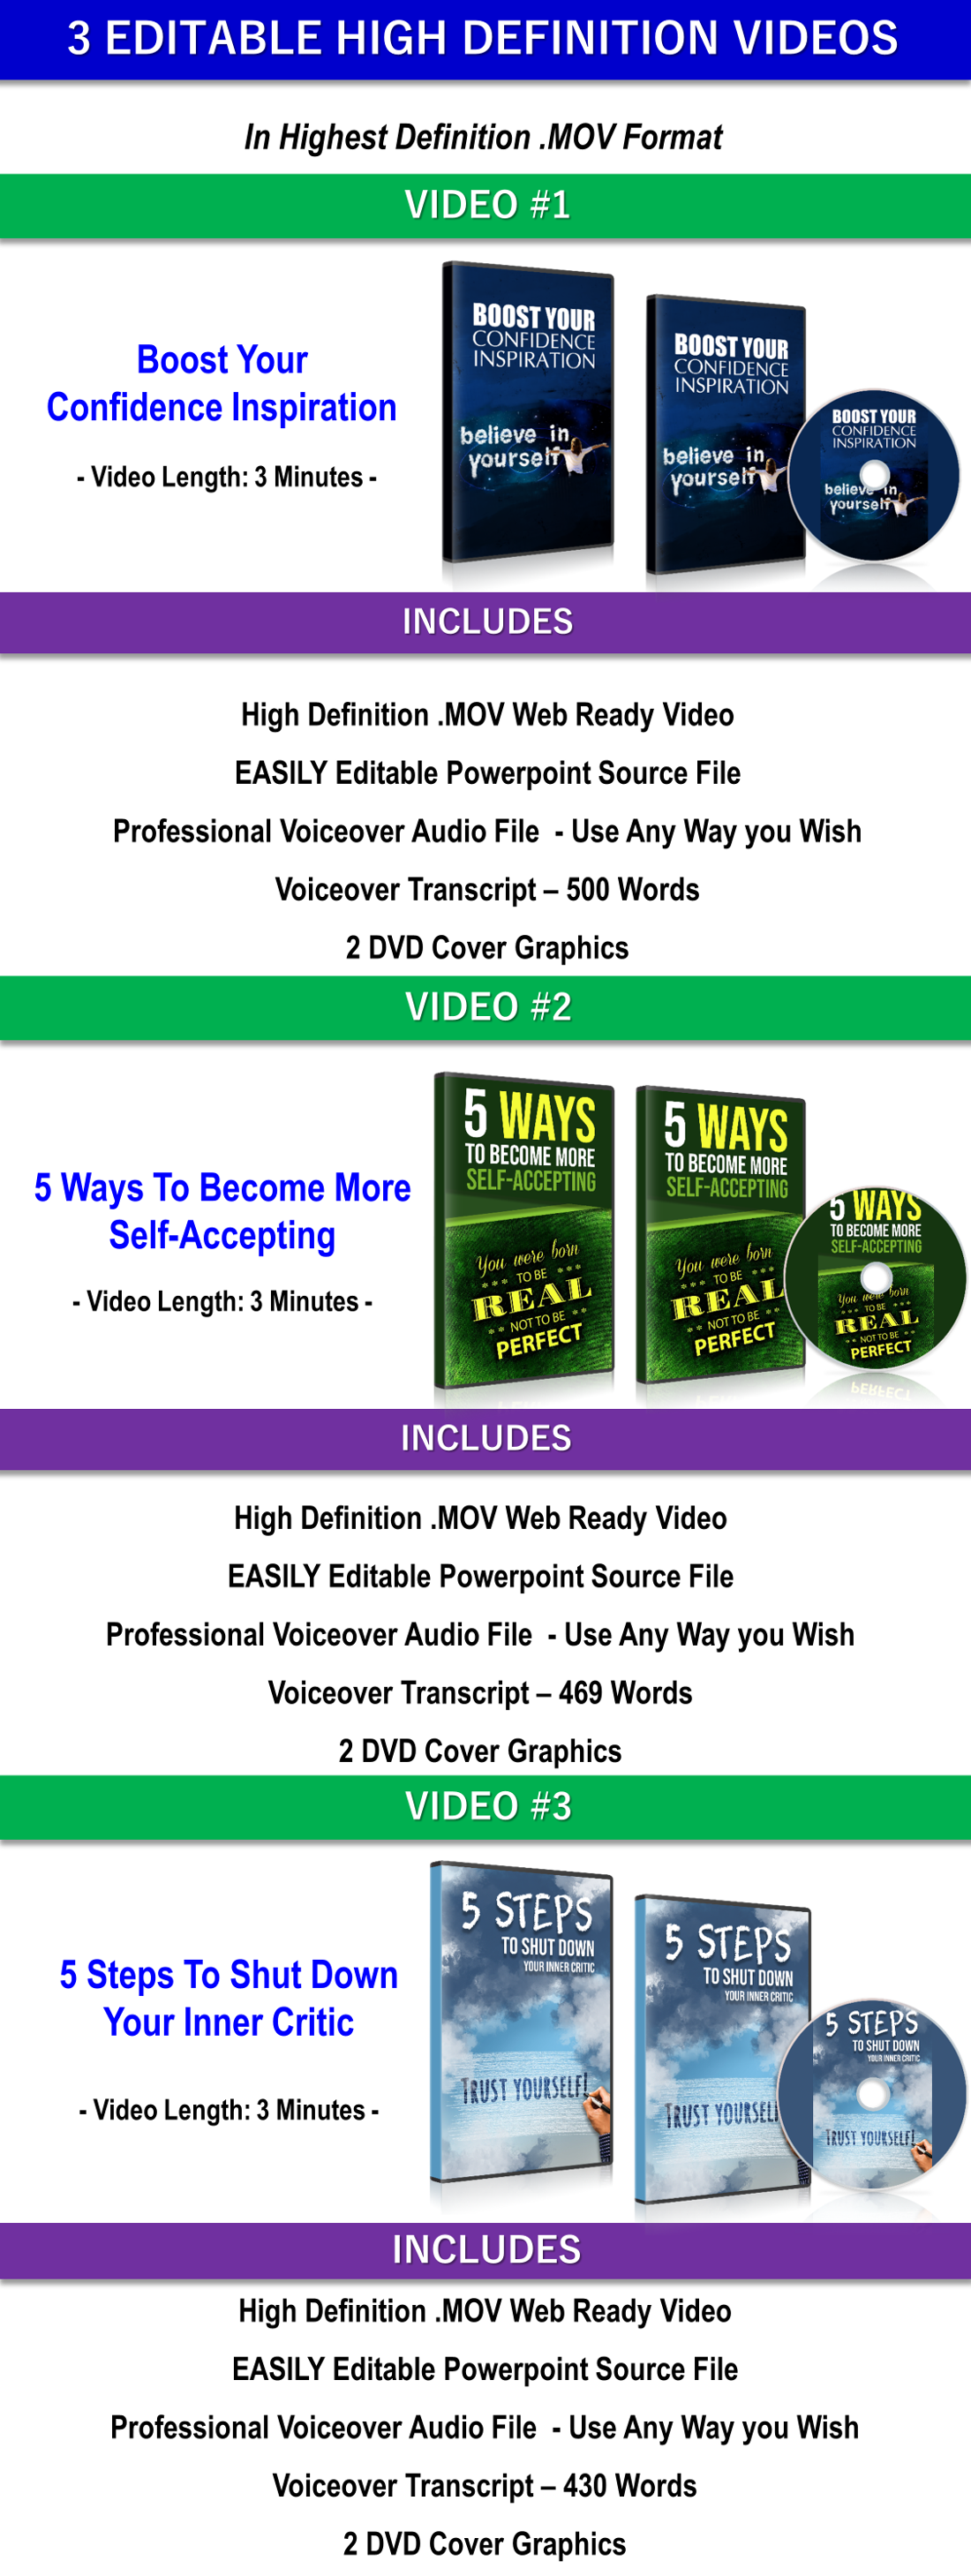 10 Part eCourse Live Your Truth Contett Pack With Private Label Rights